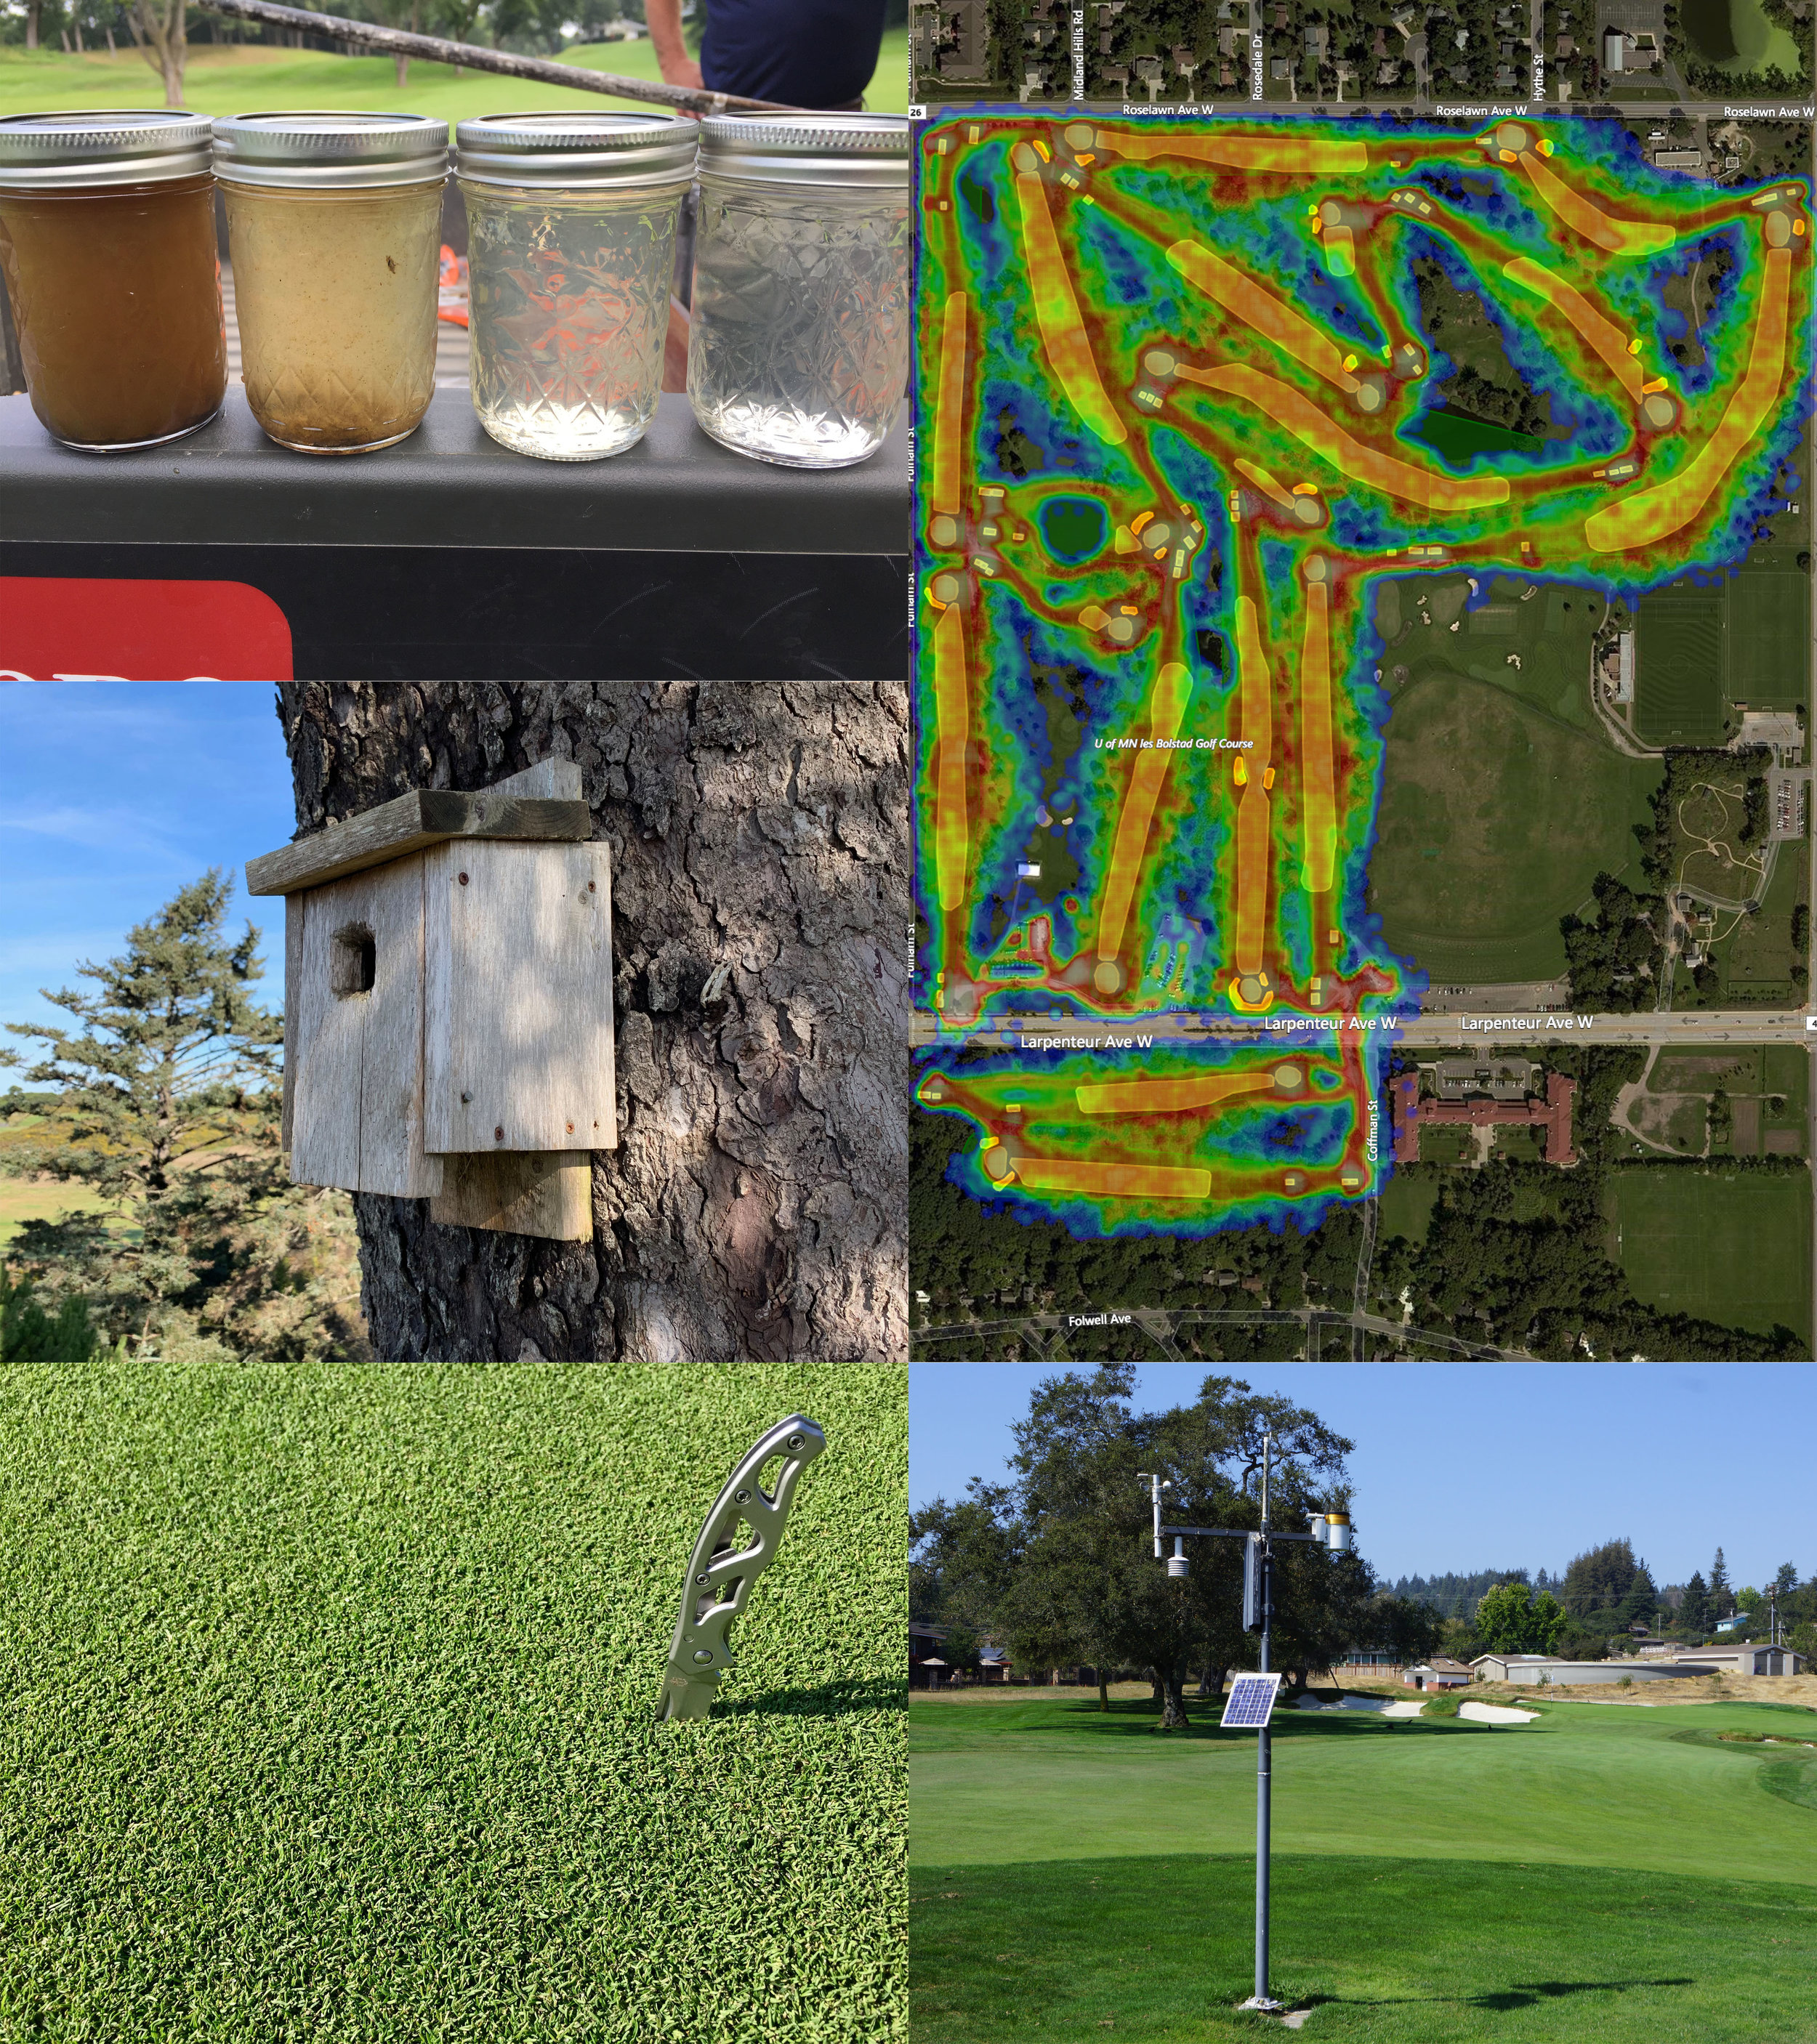 Benchmarking & Assessment: - Utilize GPS, drone, and historical data to assess the efficiency of your golf facility in a number of study areas: water use, turfgrass coverage and species, water quality, energy efficiency, nutrient and chemical use, species inventory, community engagement, programming reach, accessibility impact, to name a few. Learn more about how your golf course can increase its positive impact, increase its revenue potential, and decrease costs and resource use.